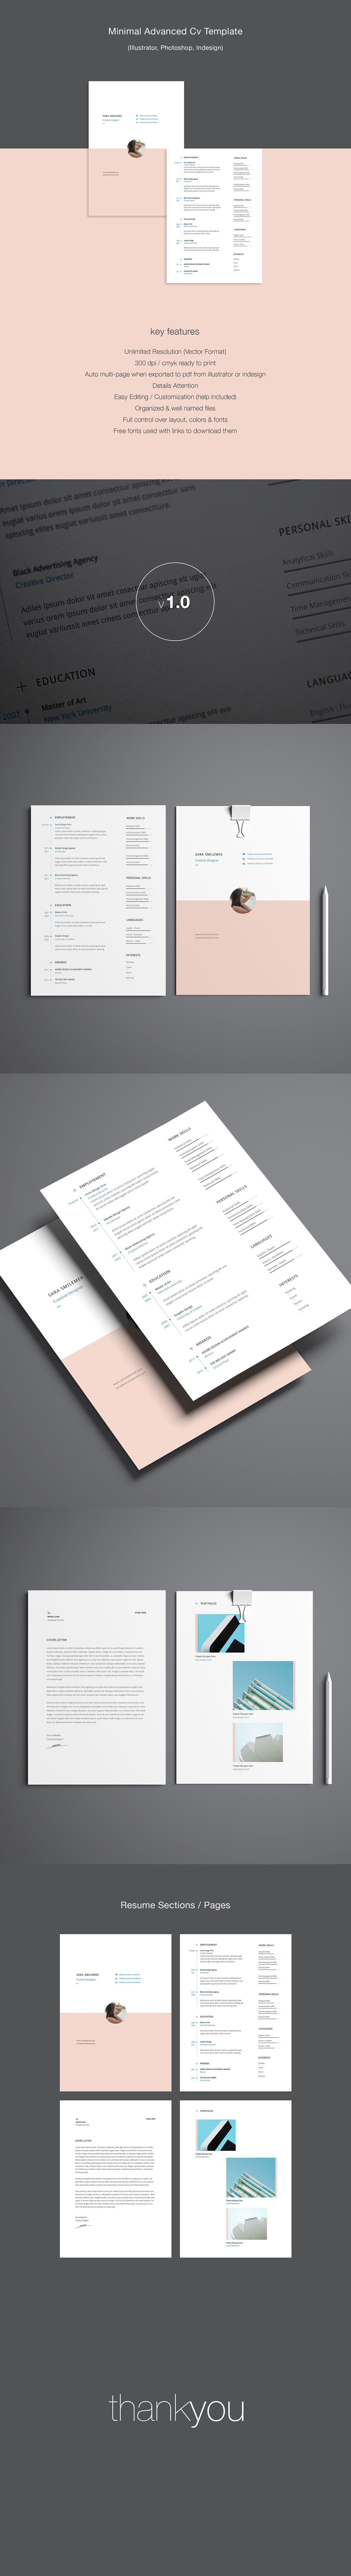 Advanced 4 Pages resume template with for main sections